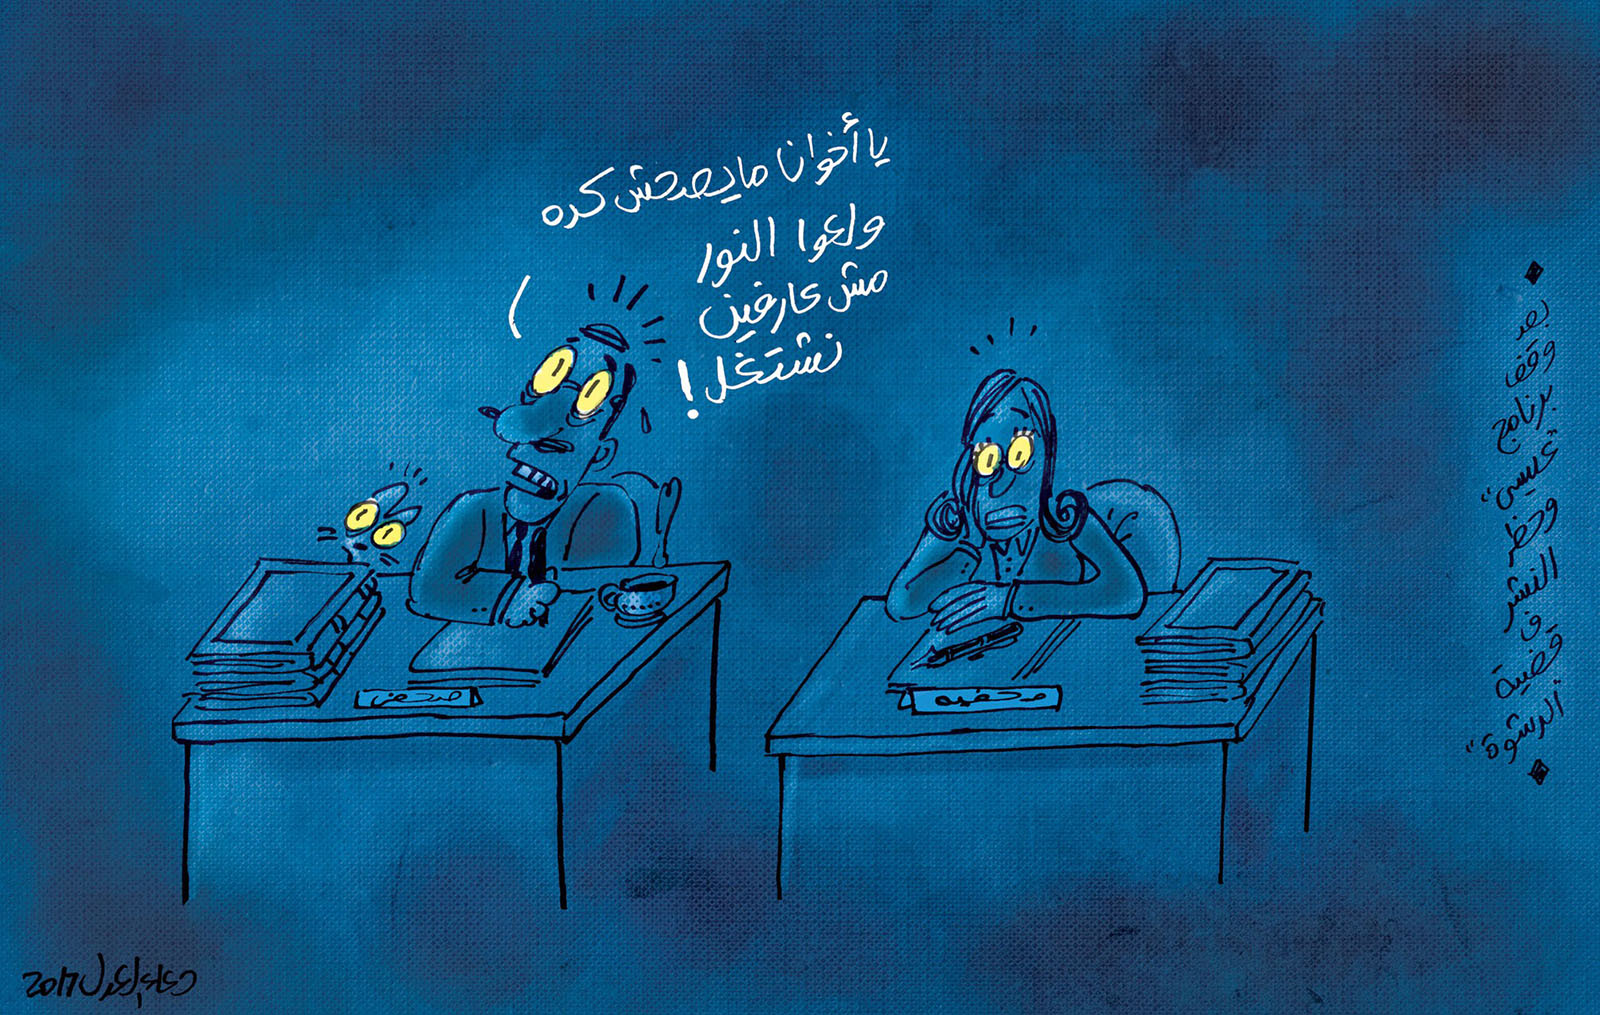 Doaa's caricature about working in the darkness.